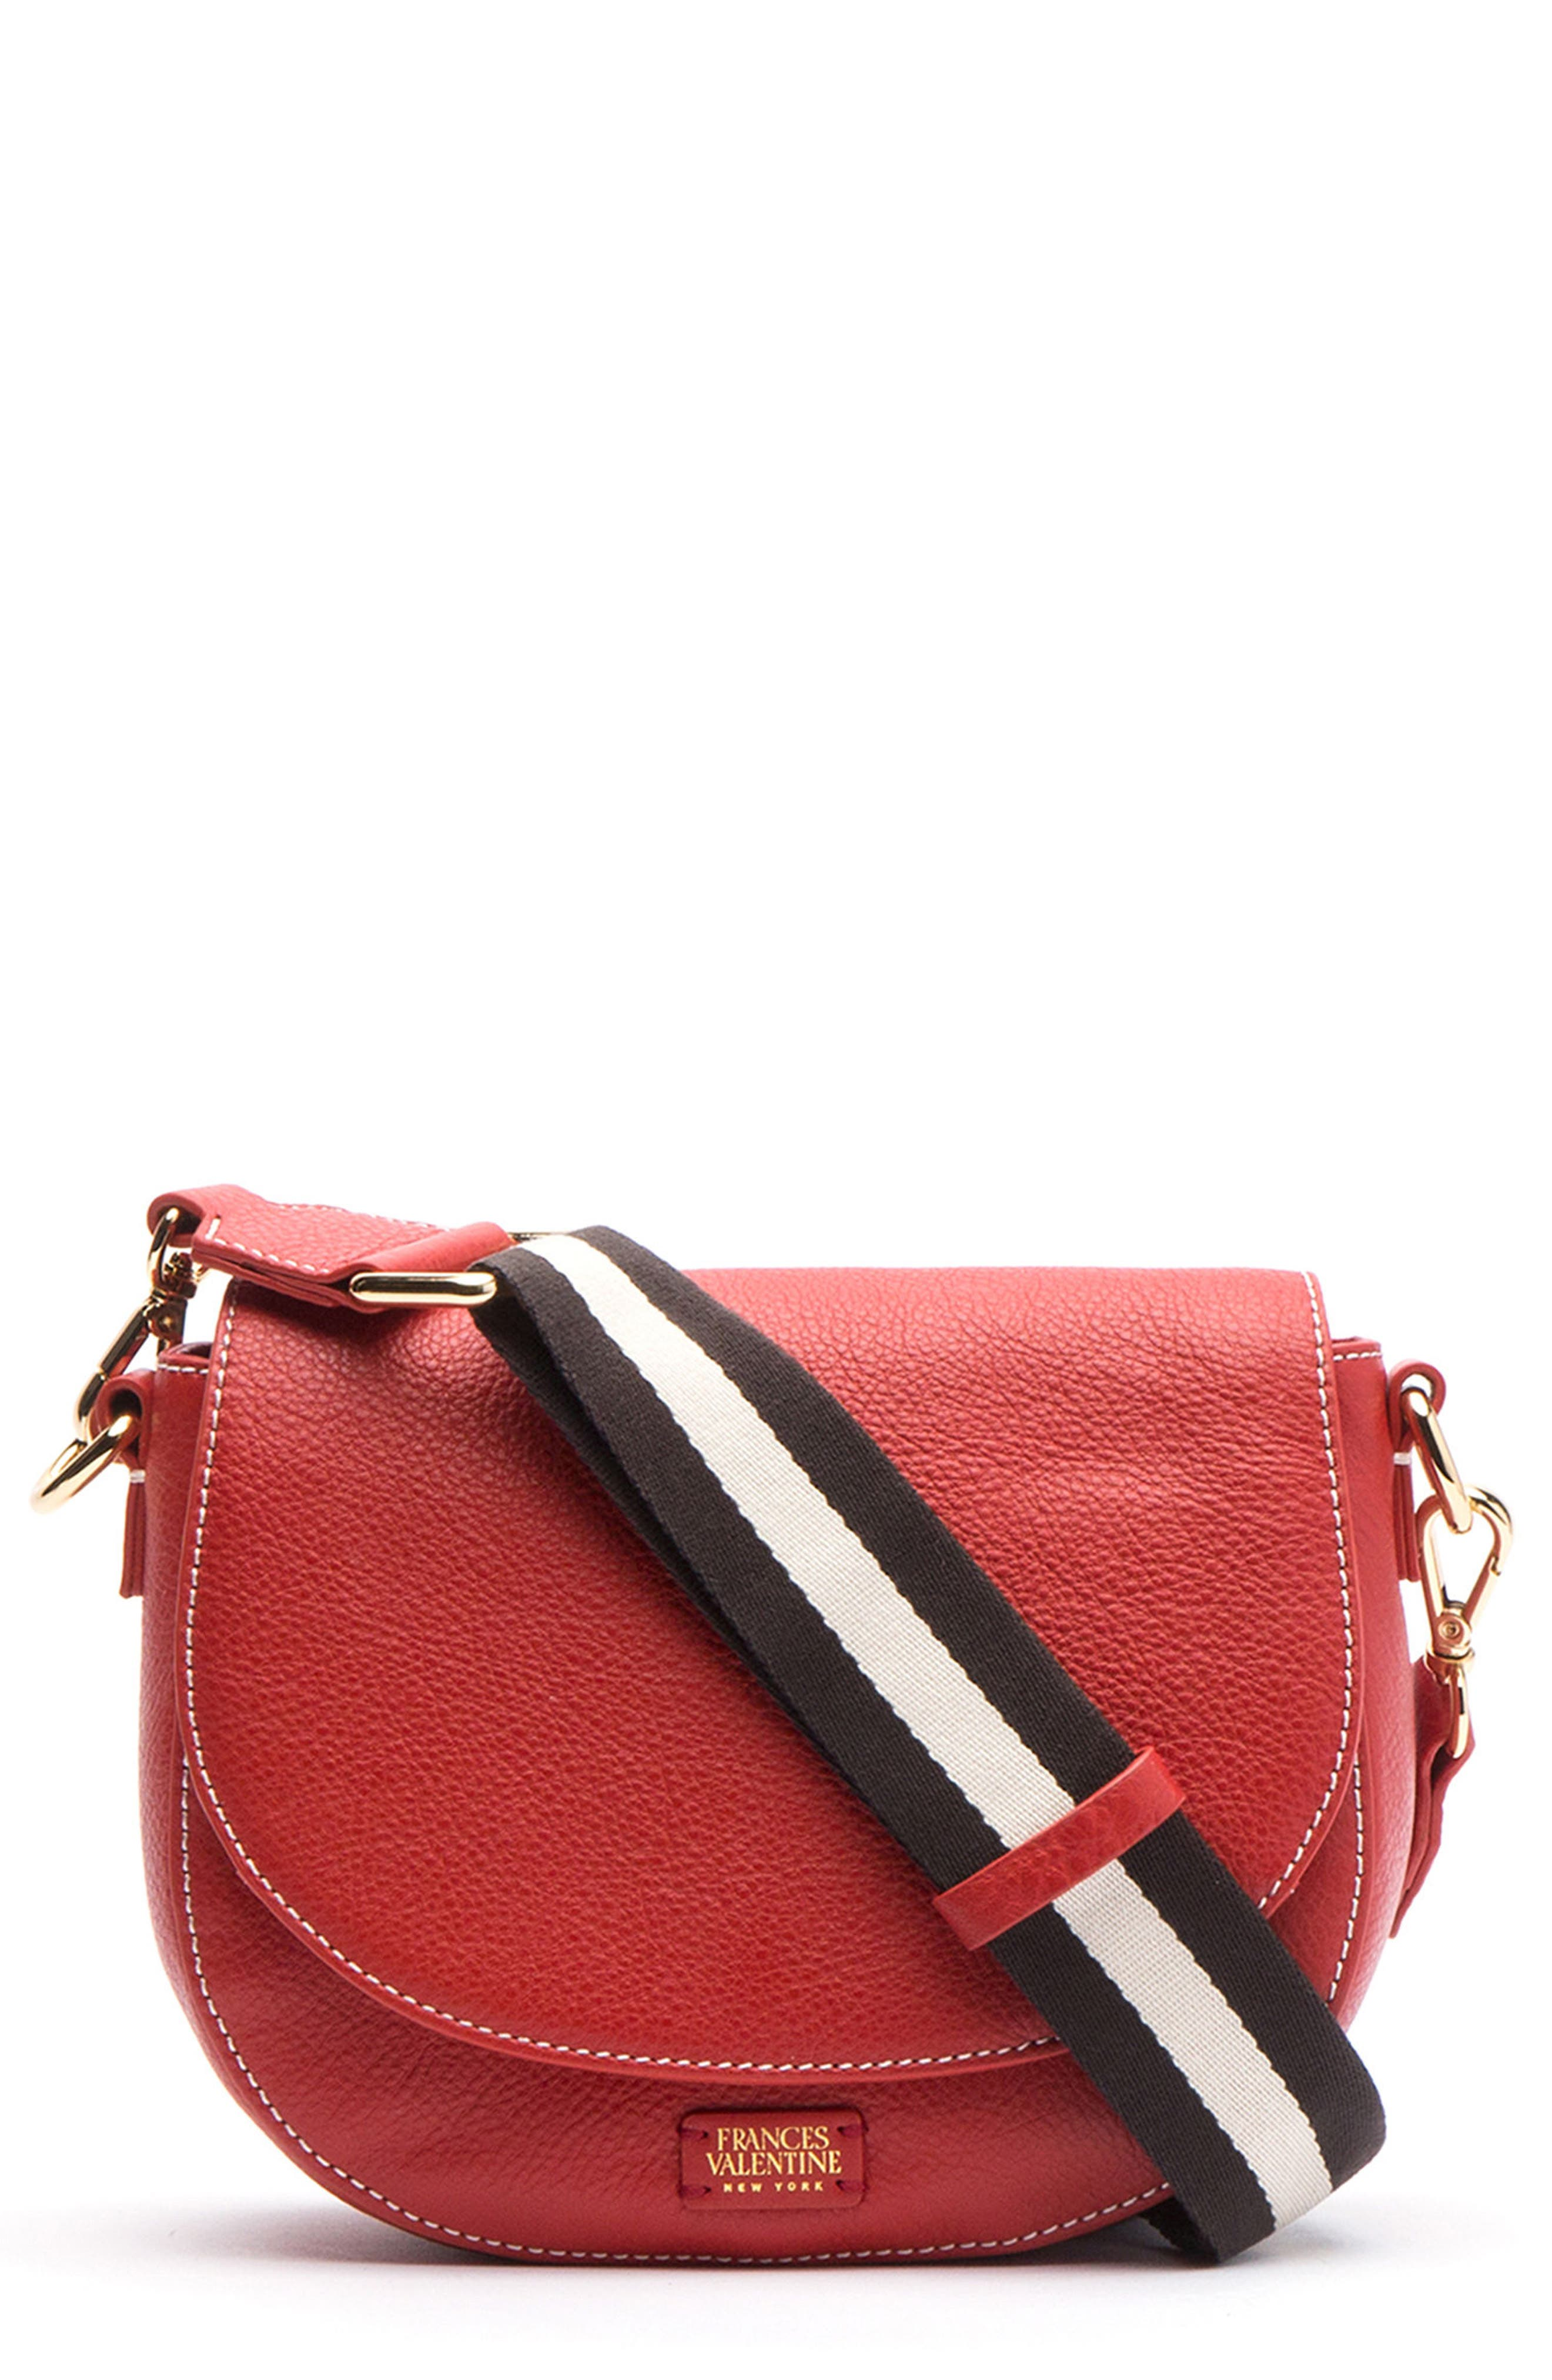 Frances Valentine Mini Ellen Leather Crossbody Bag